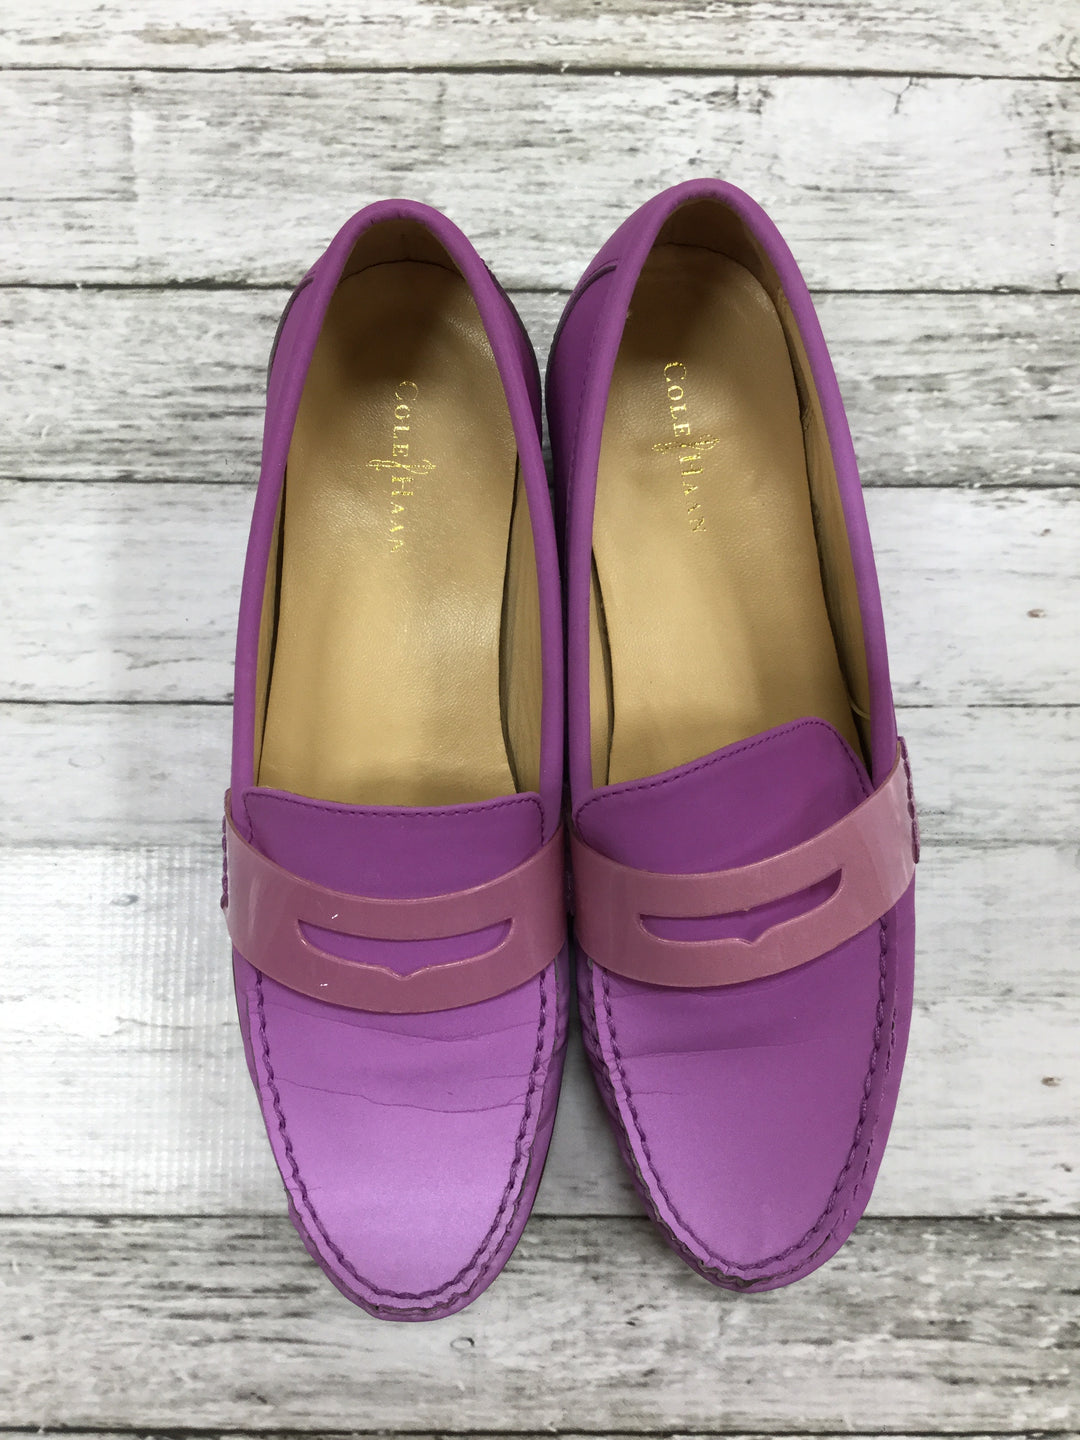 Primary Photo - BRAND: COLE-HAAN , STYLE: SHOES FLATS , COLOR: PURPLE , SIZE: 9.5 , SKU: 127-3371-40060